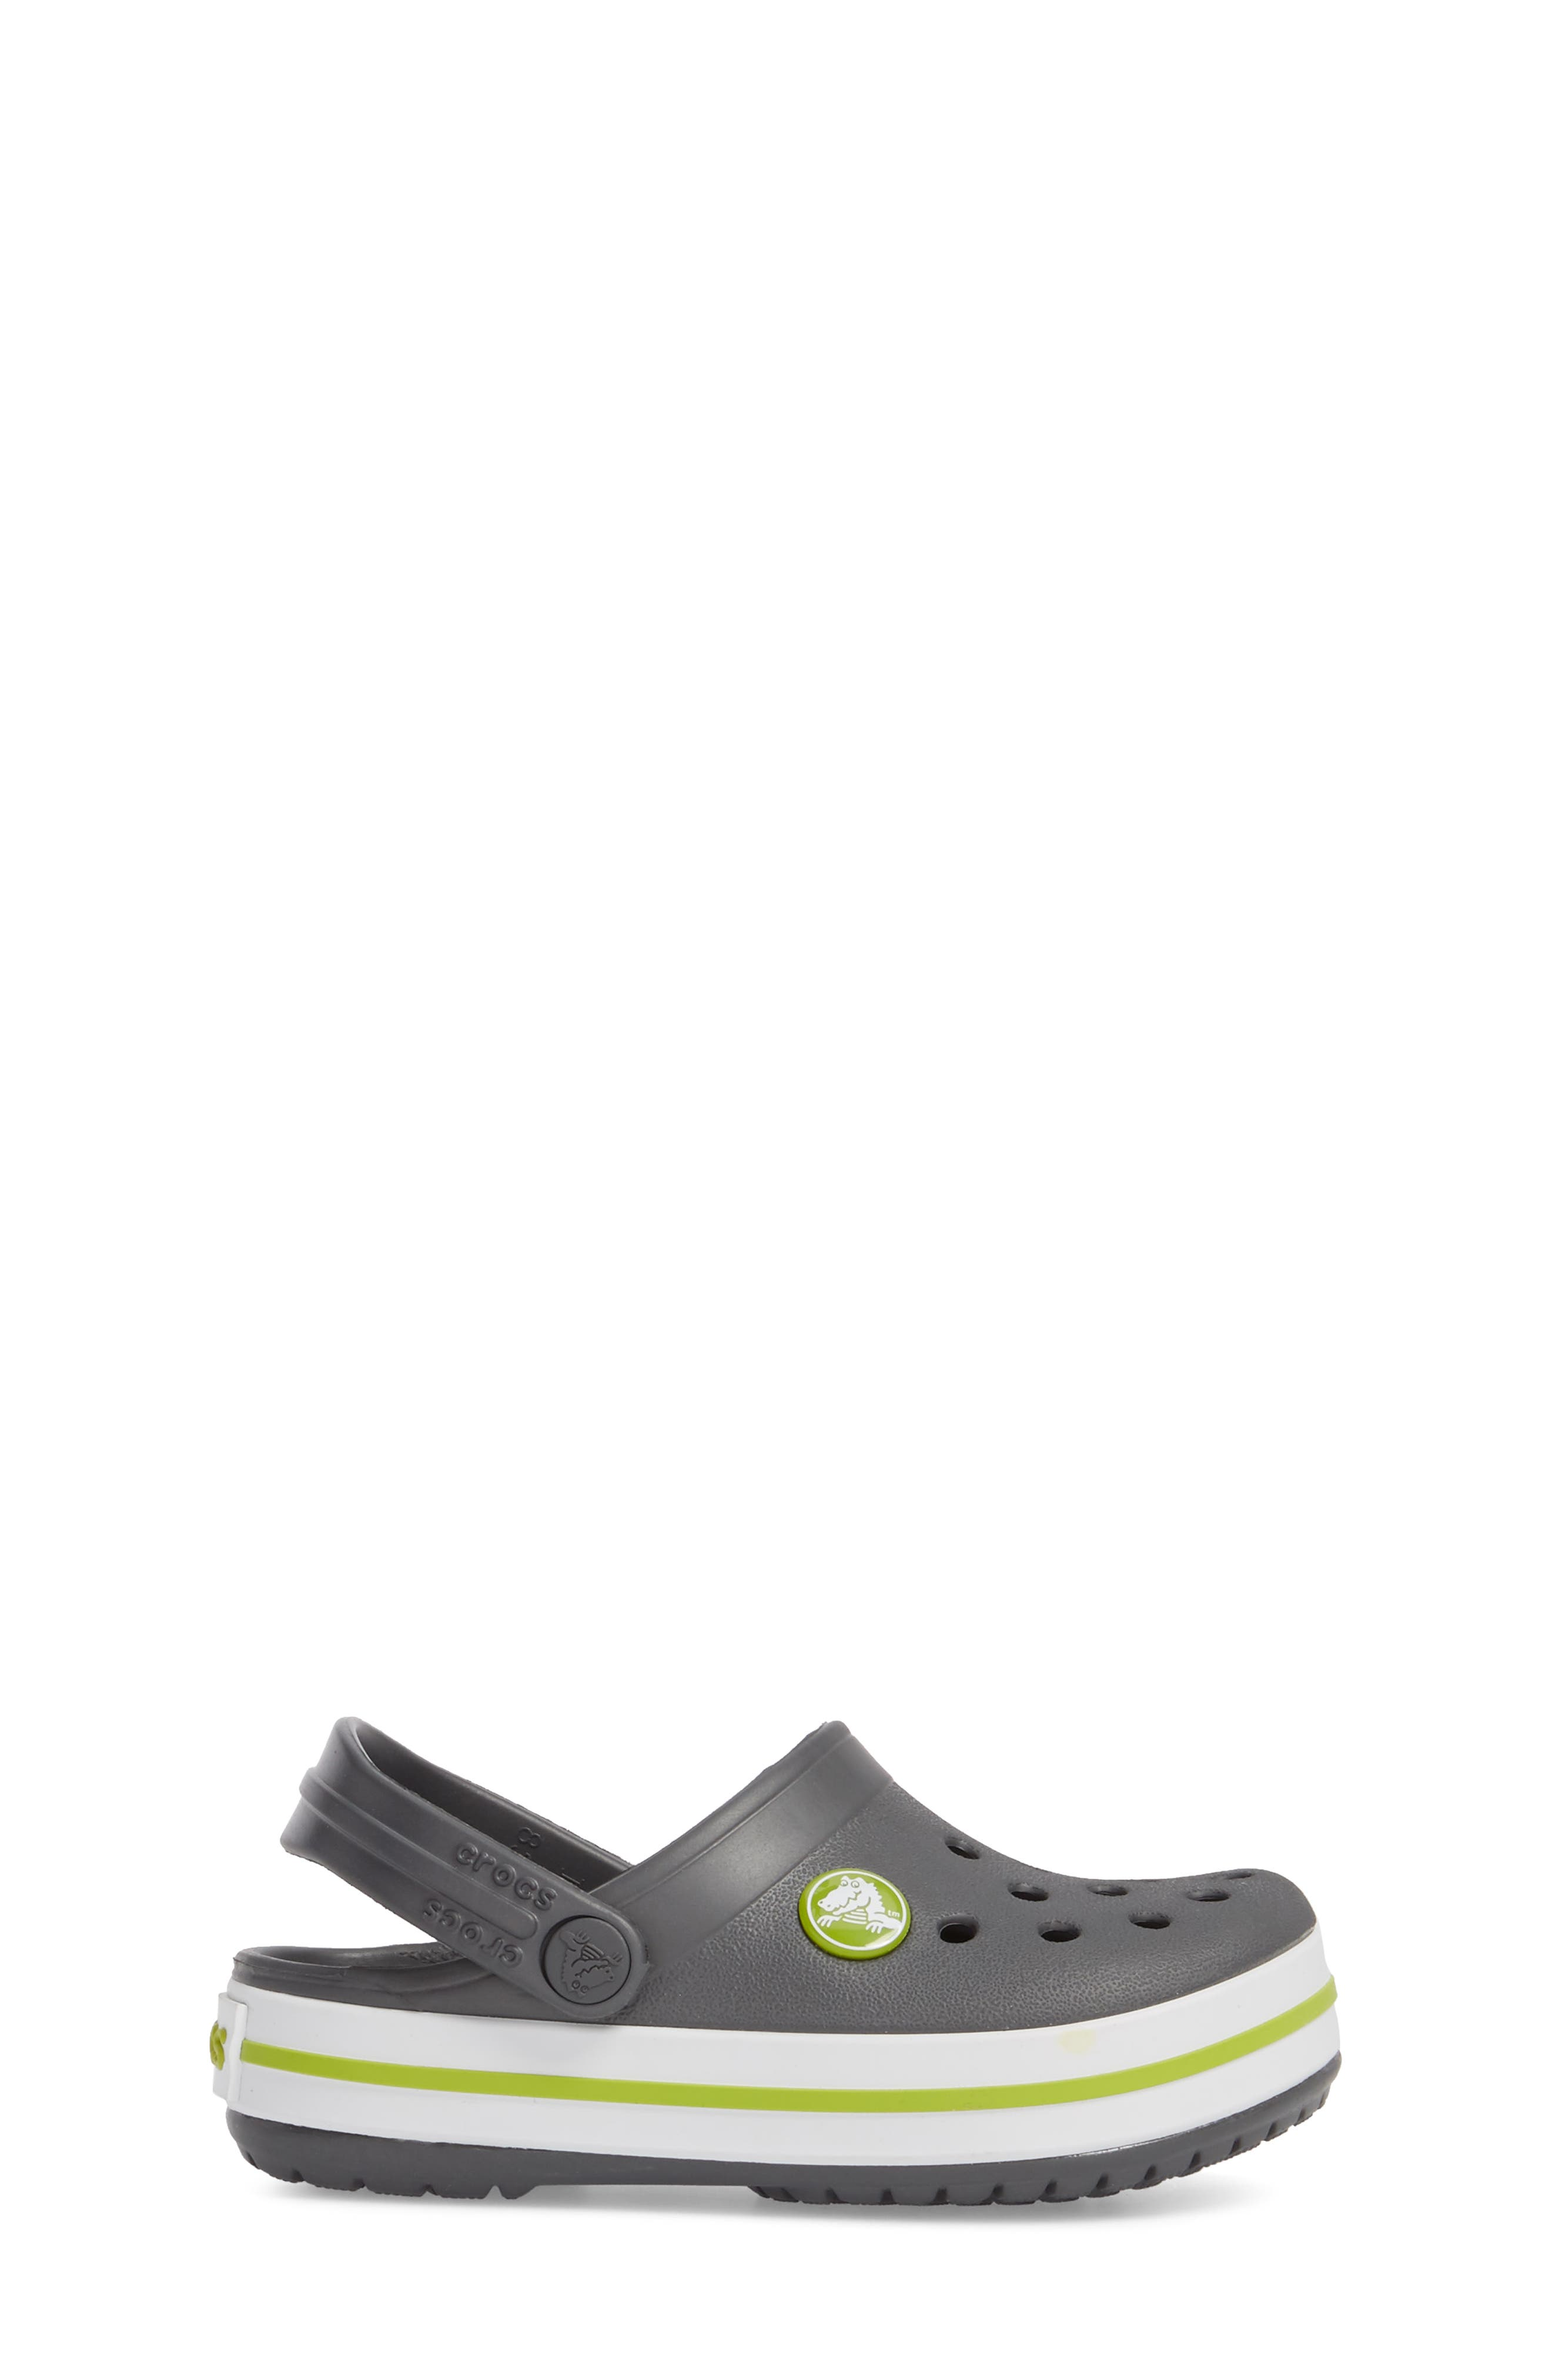 Crocband Clog,                             Alternate thumbnail 3, color,                             GRAPHITE/ GREEN